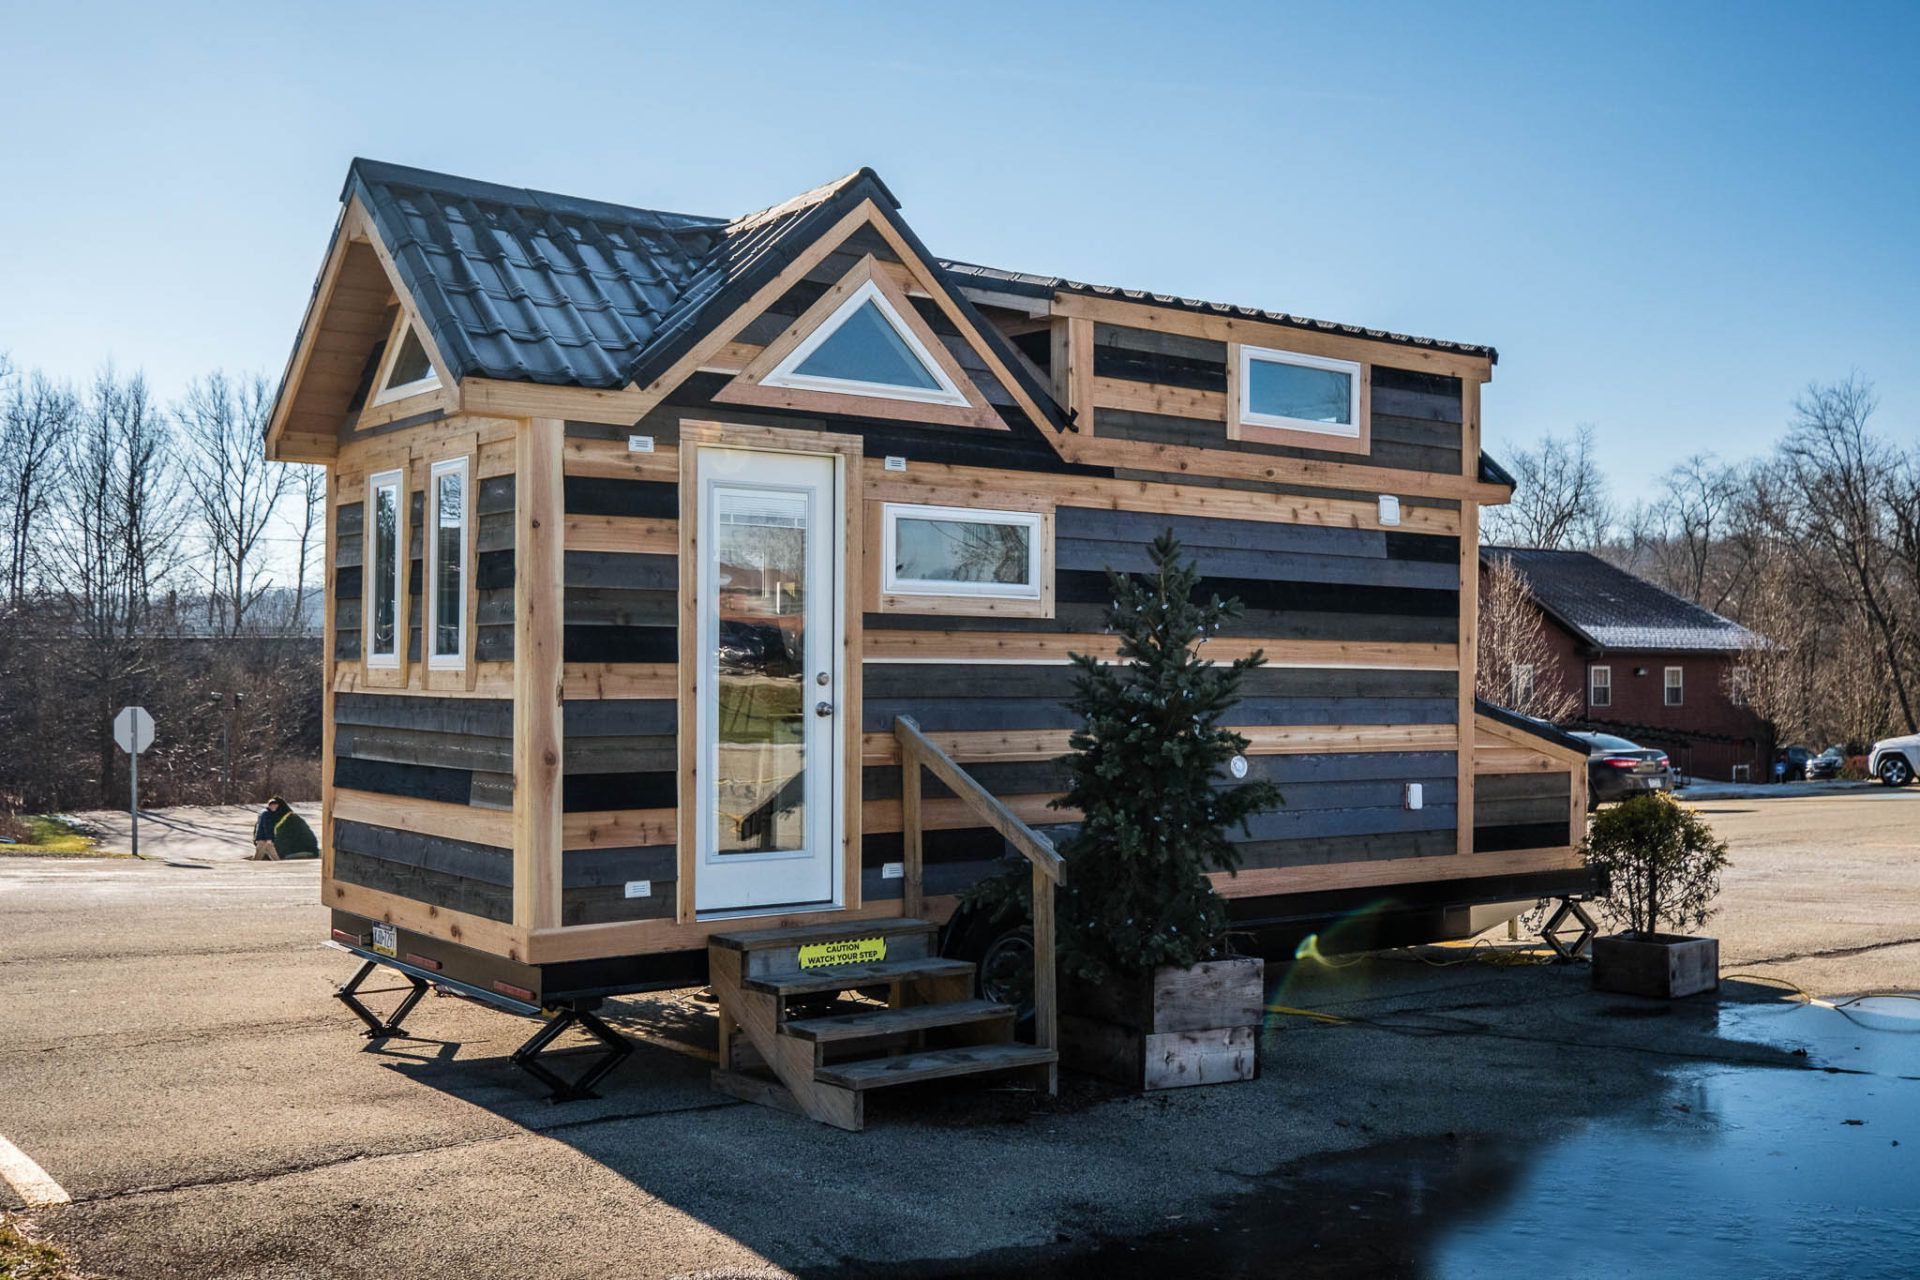 Brilliant 7 Totally Doable Diy Tiny House Kits Home Interior And Landscaping Ponolsignezvosmurscom